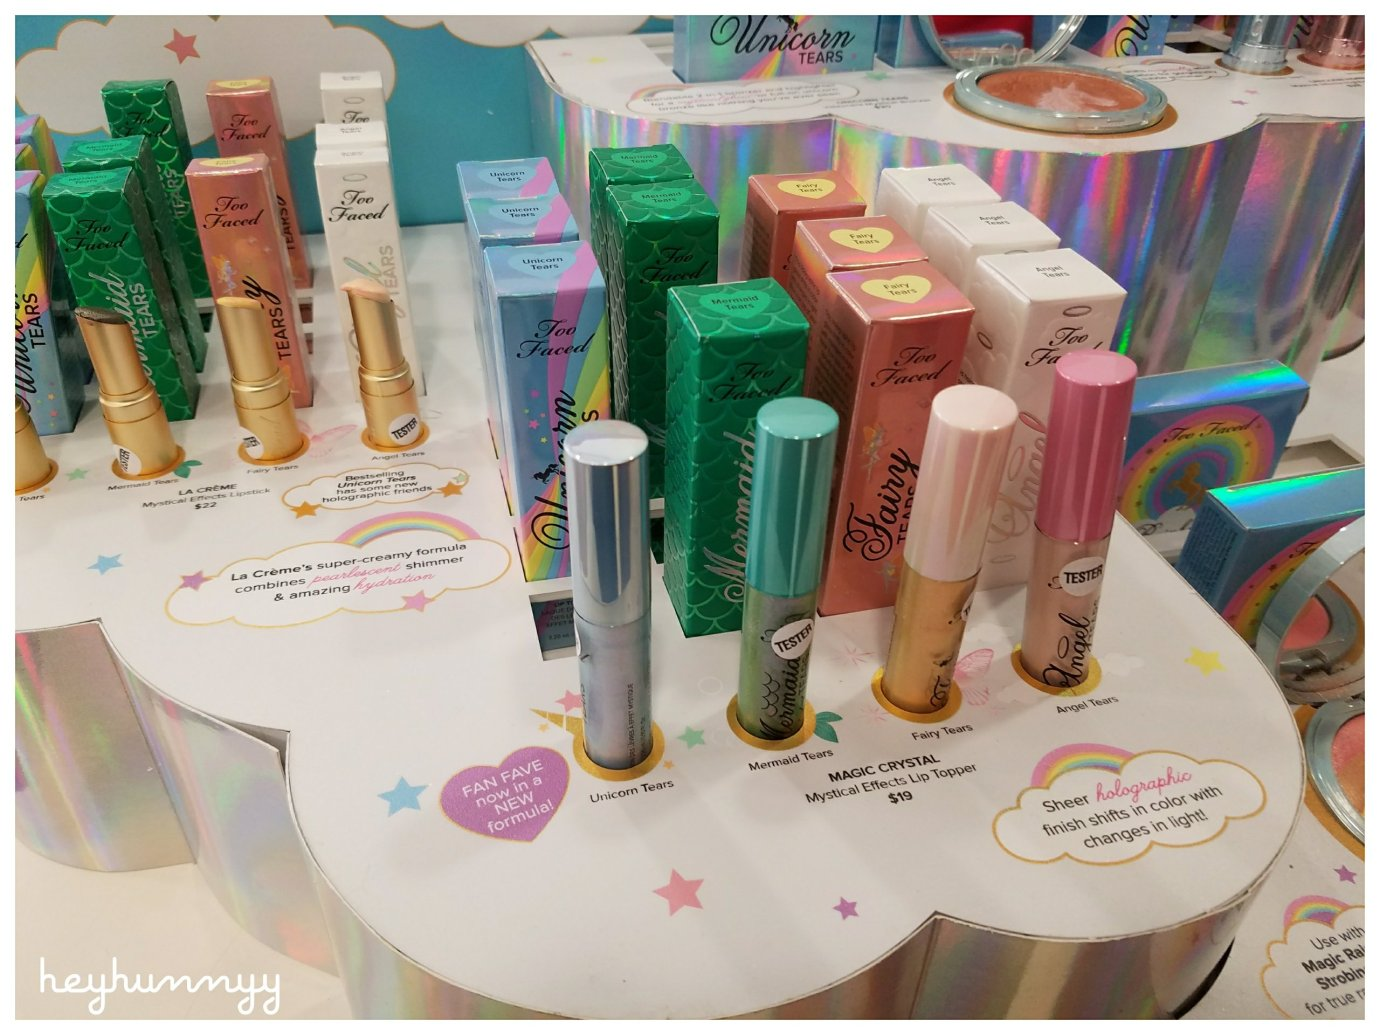 ::Too Faced:: Life's A Festival Unicorn Palooza!